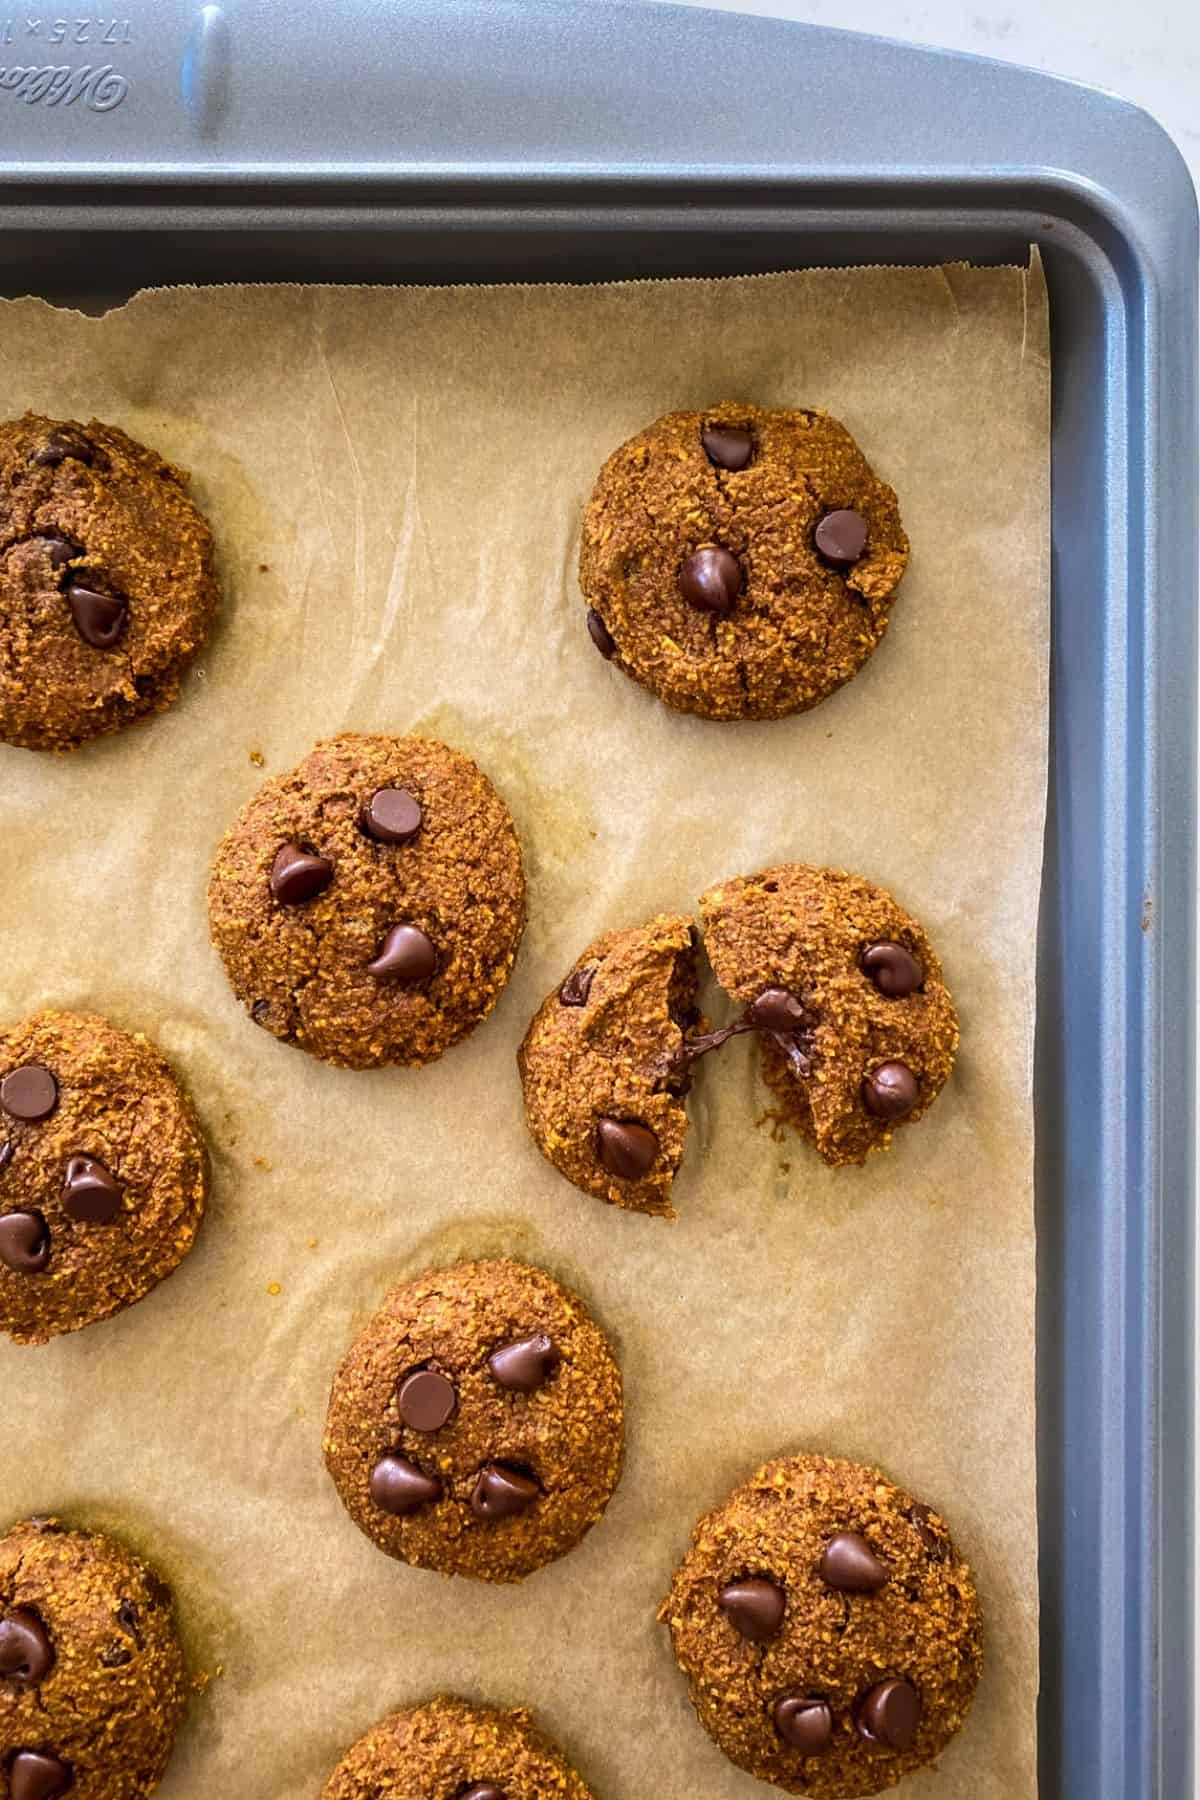 Baked cookies on tray with one cookie split in half and chocolate chip stretching from one half to the other.